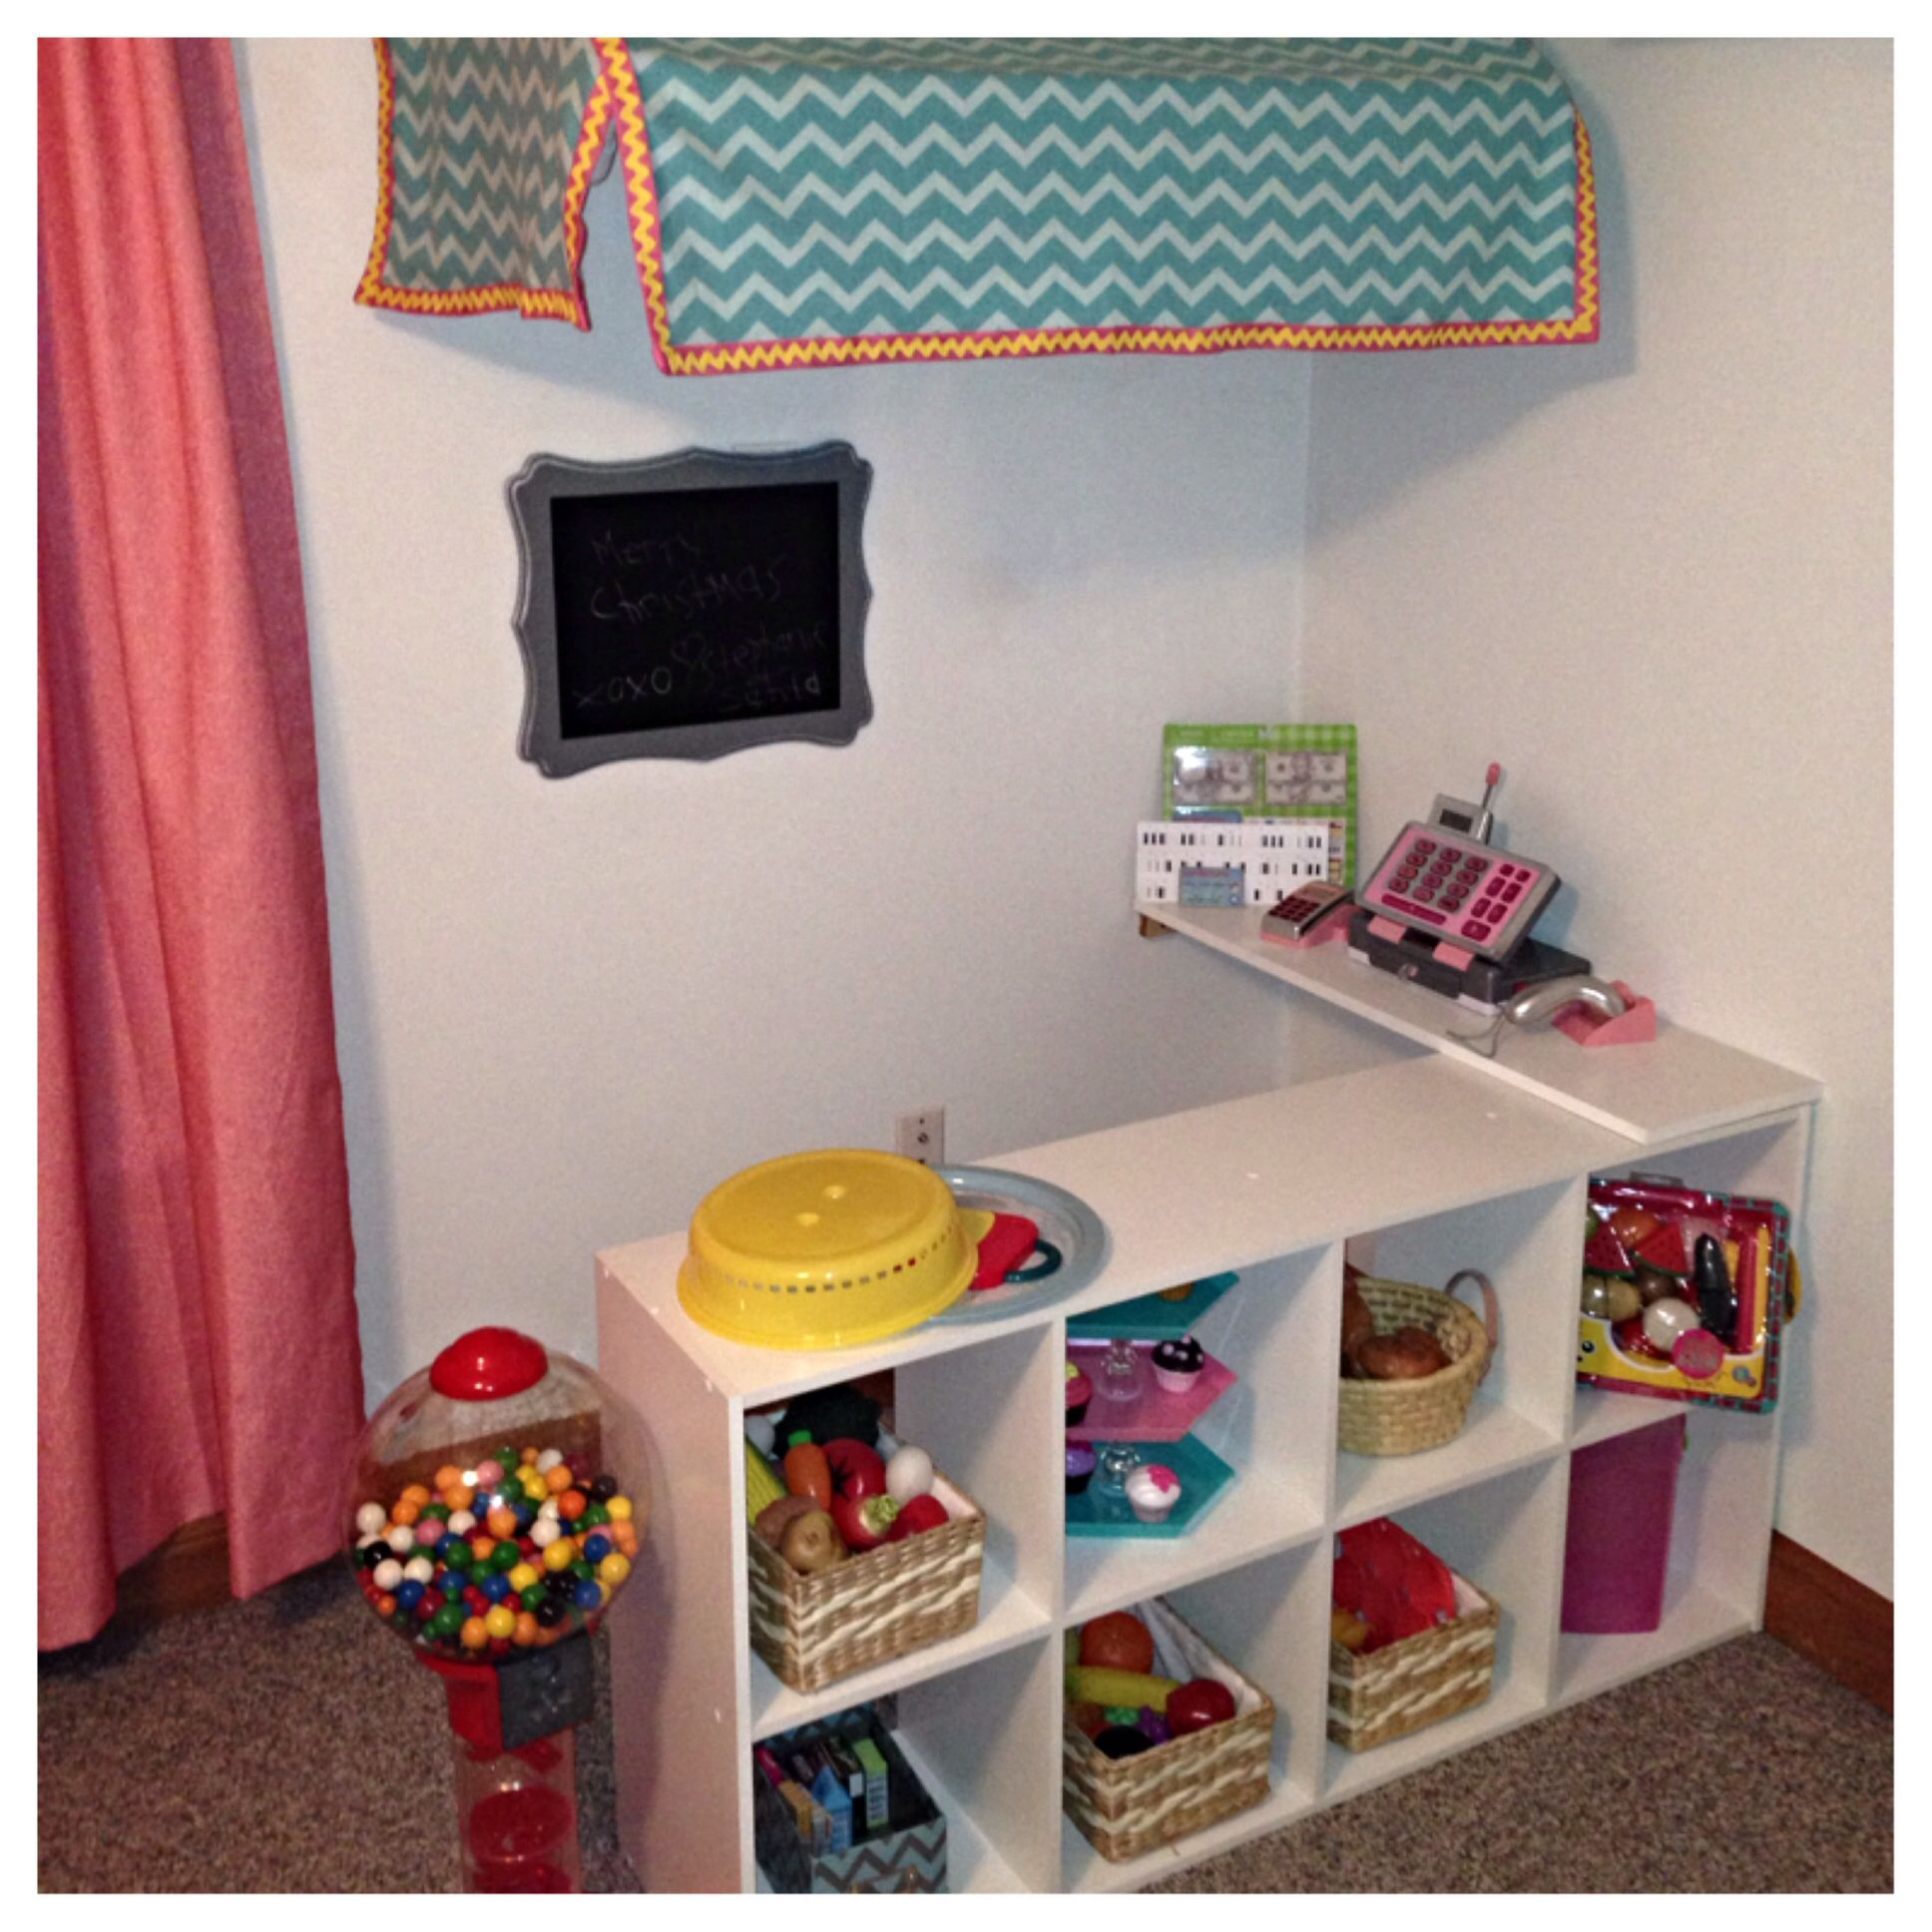 Pin By Monica Byrd On My Creations Gifts Kids Play Store Ikea Hack Kids Play Market